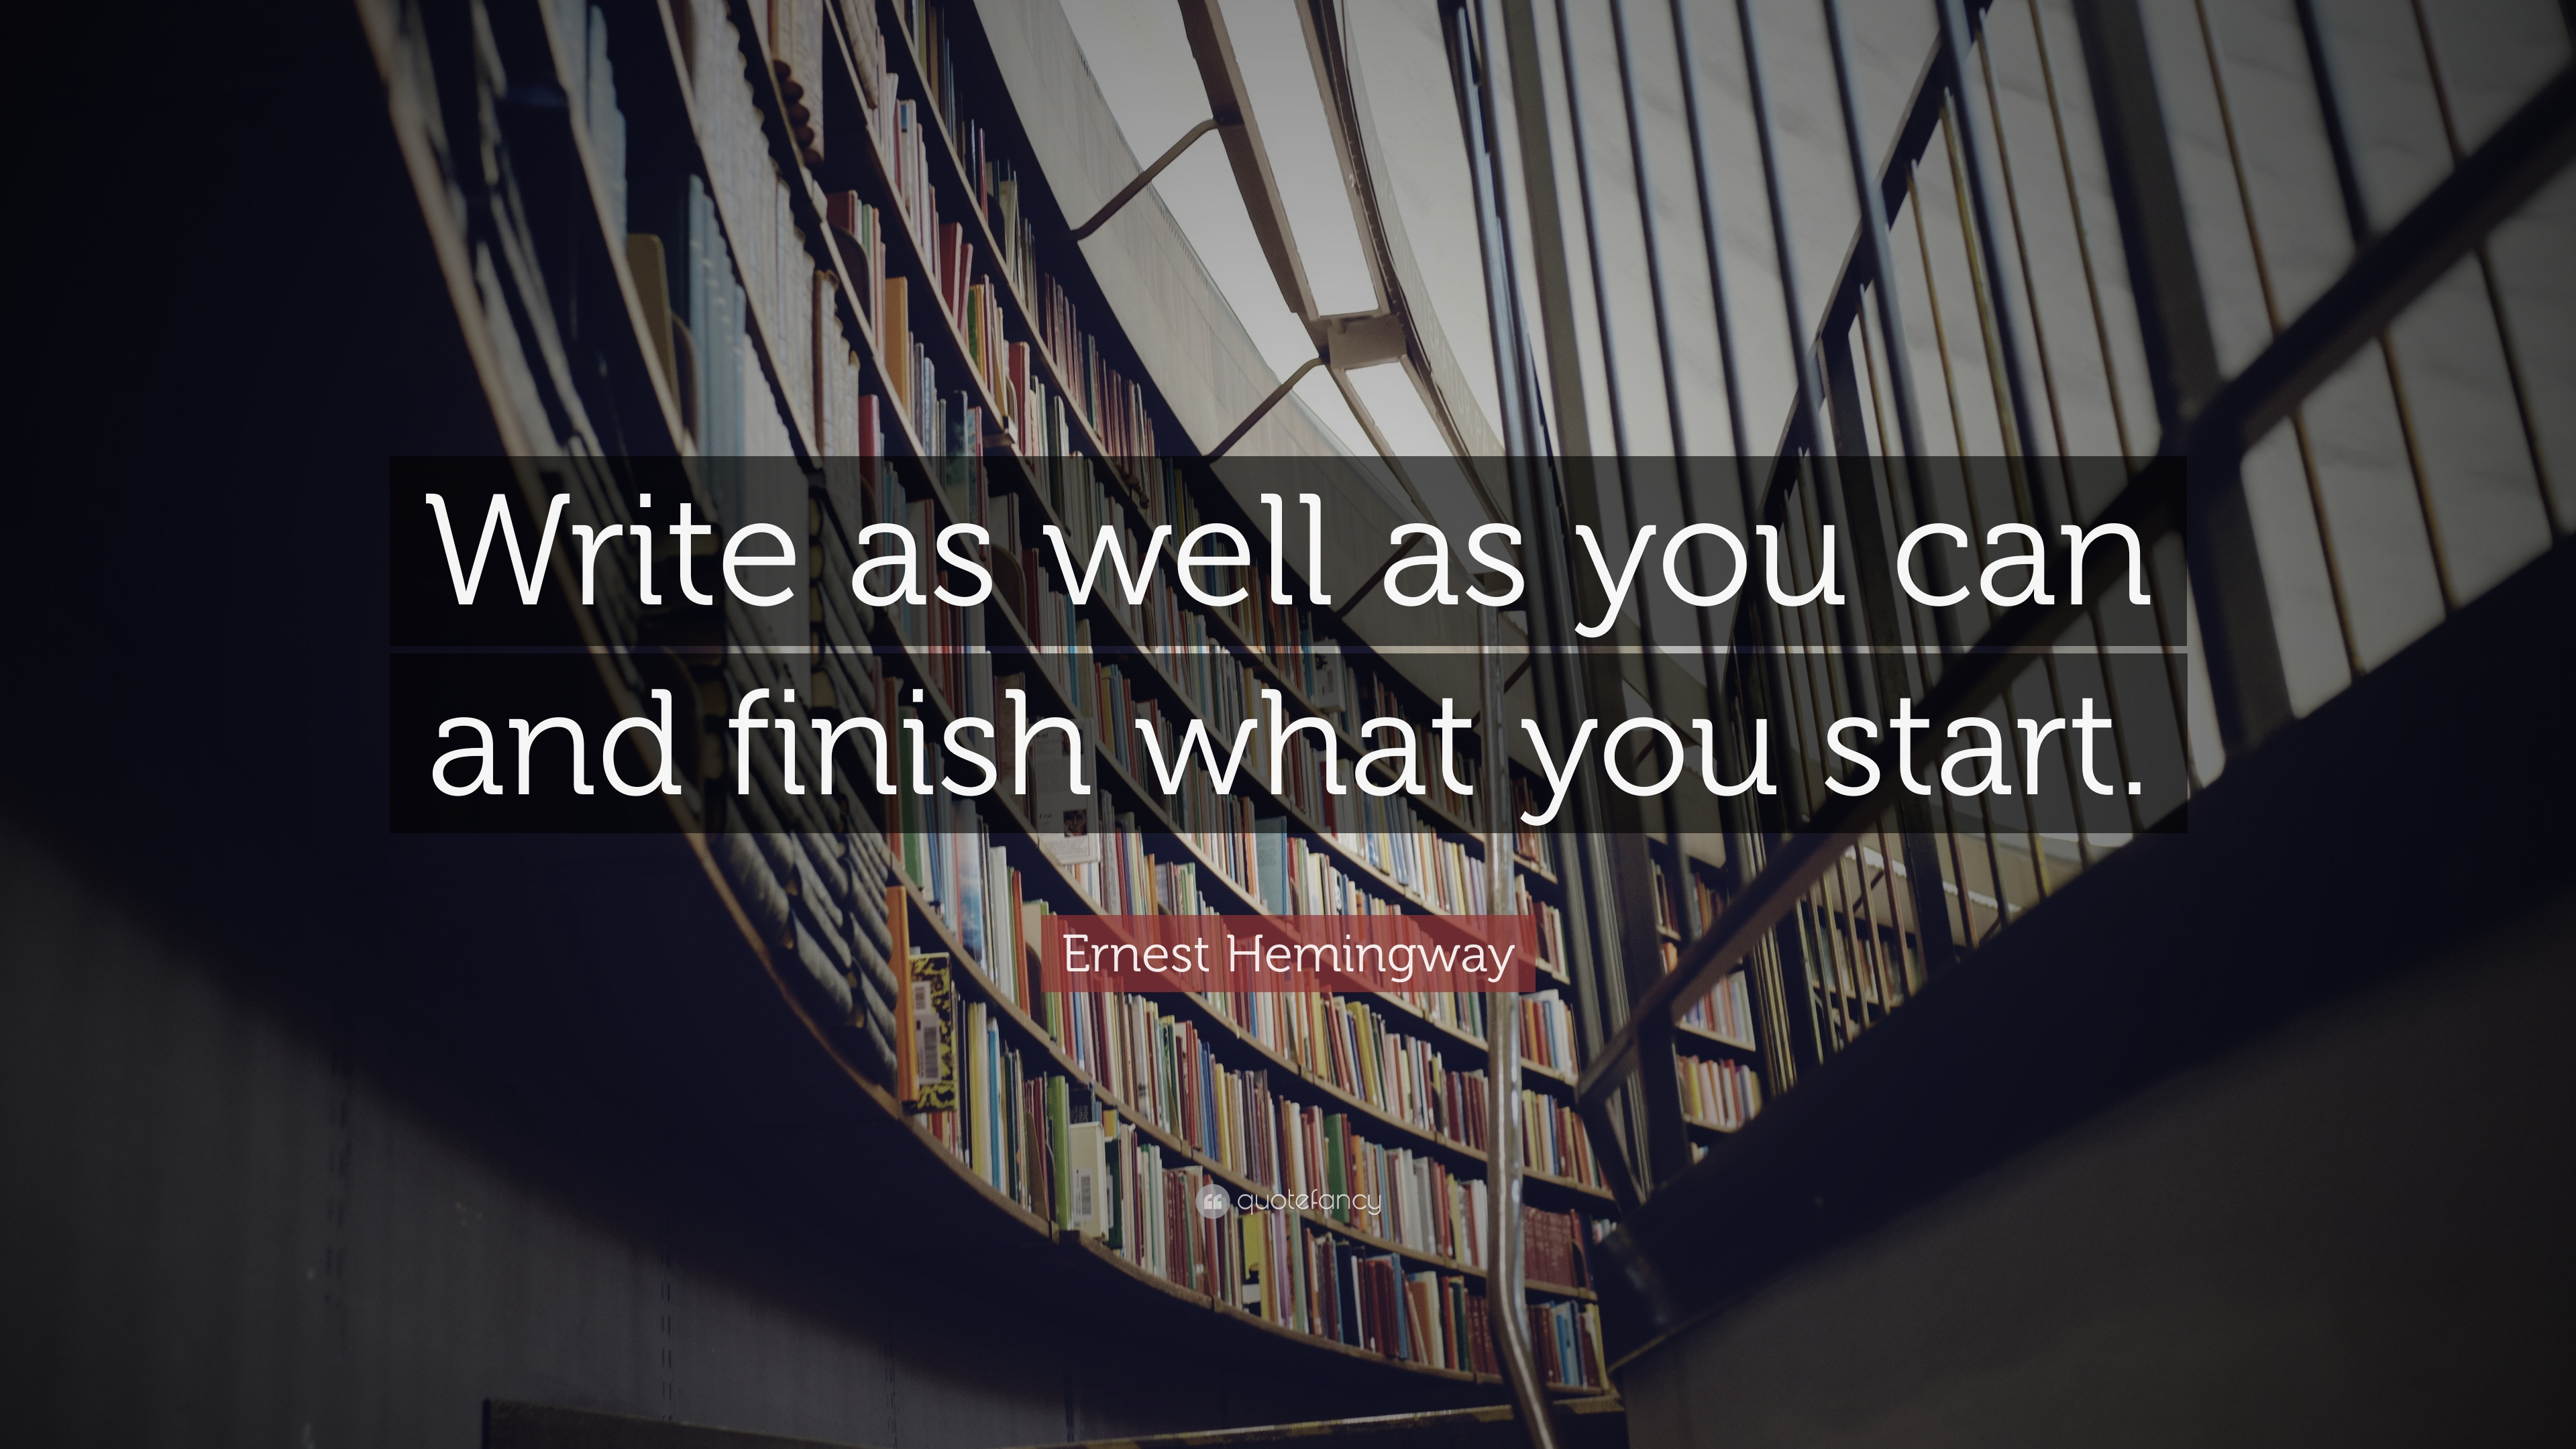 finish what you start quotes